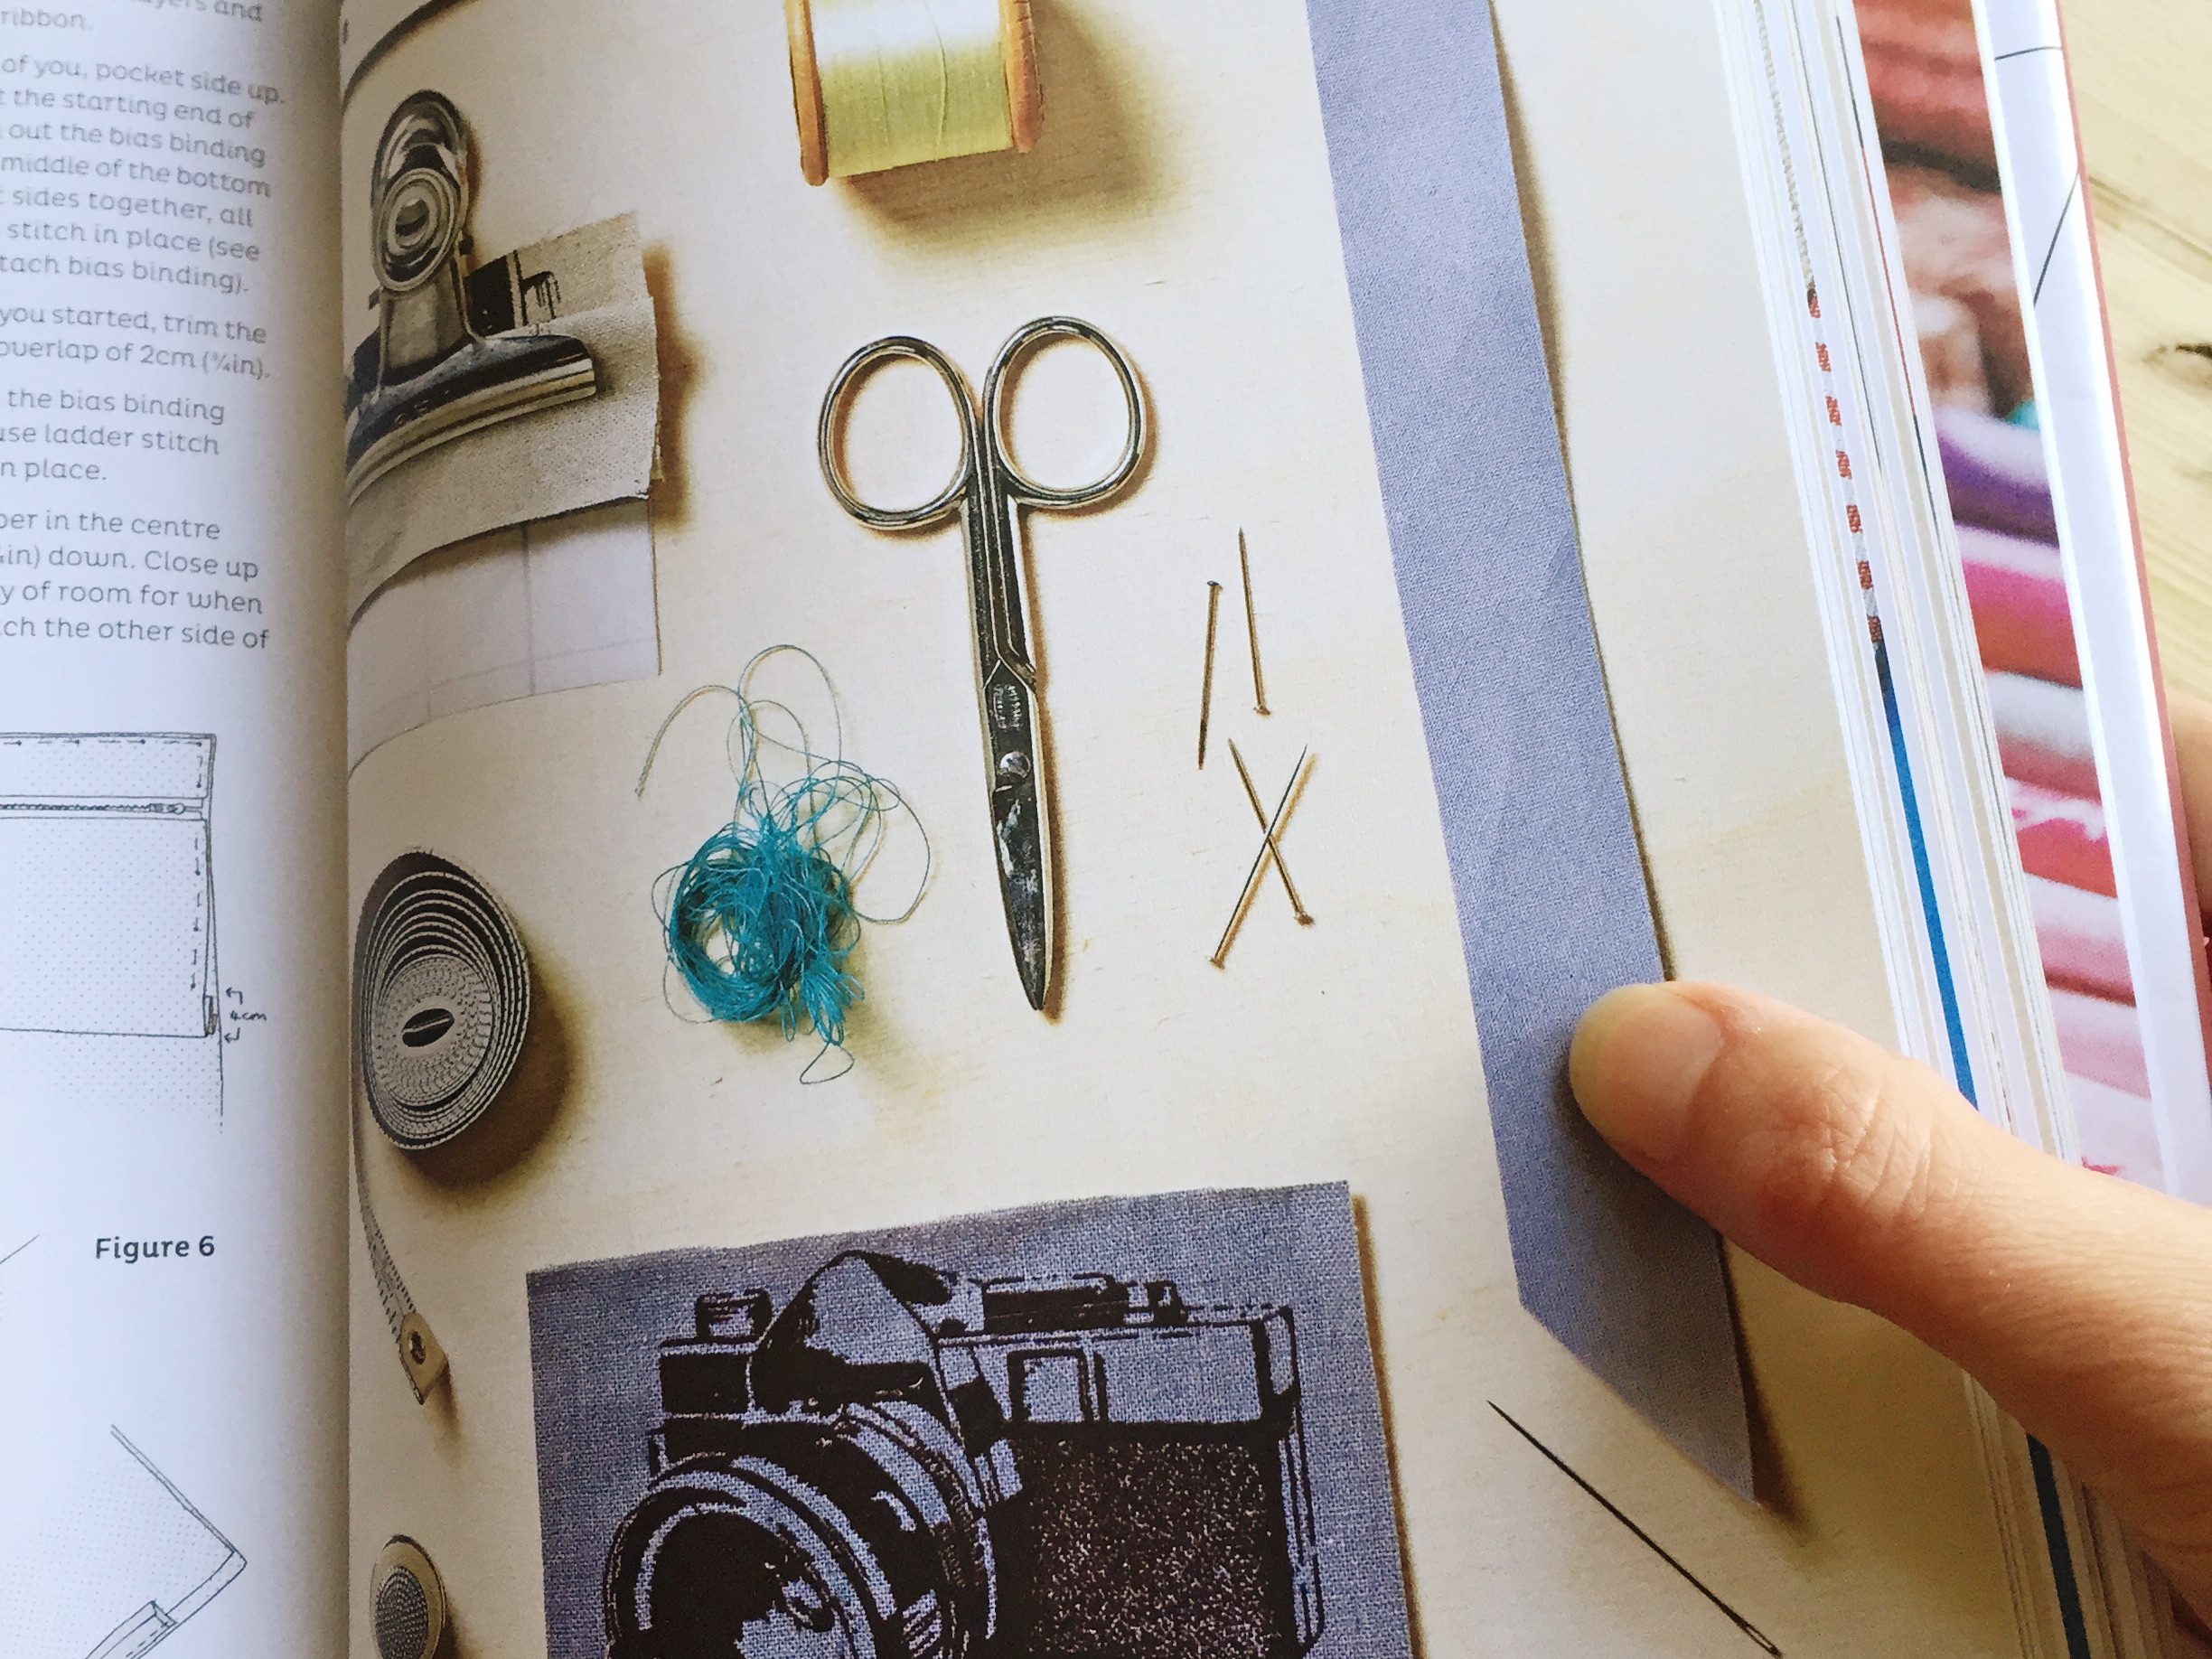 Beautifulstyling inside this basic sewing book